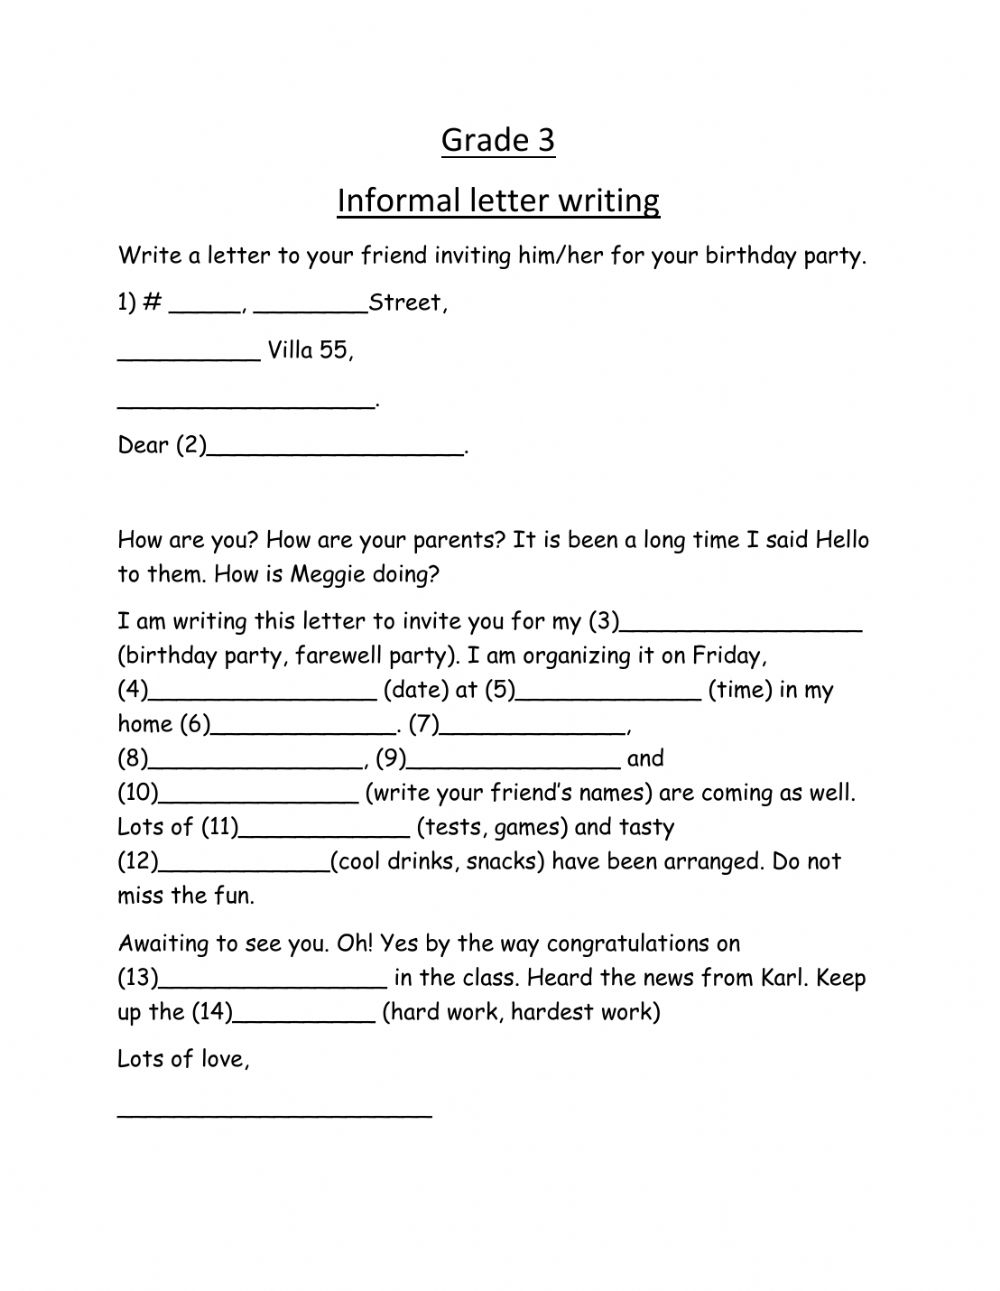 Informal Letter - Interactive Worksheet inside Letter Writing Worksheets For Grade 4